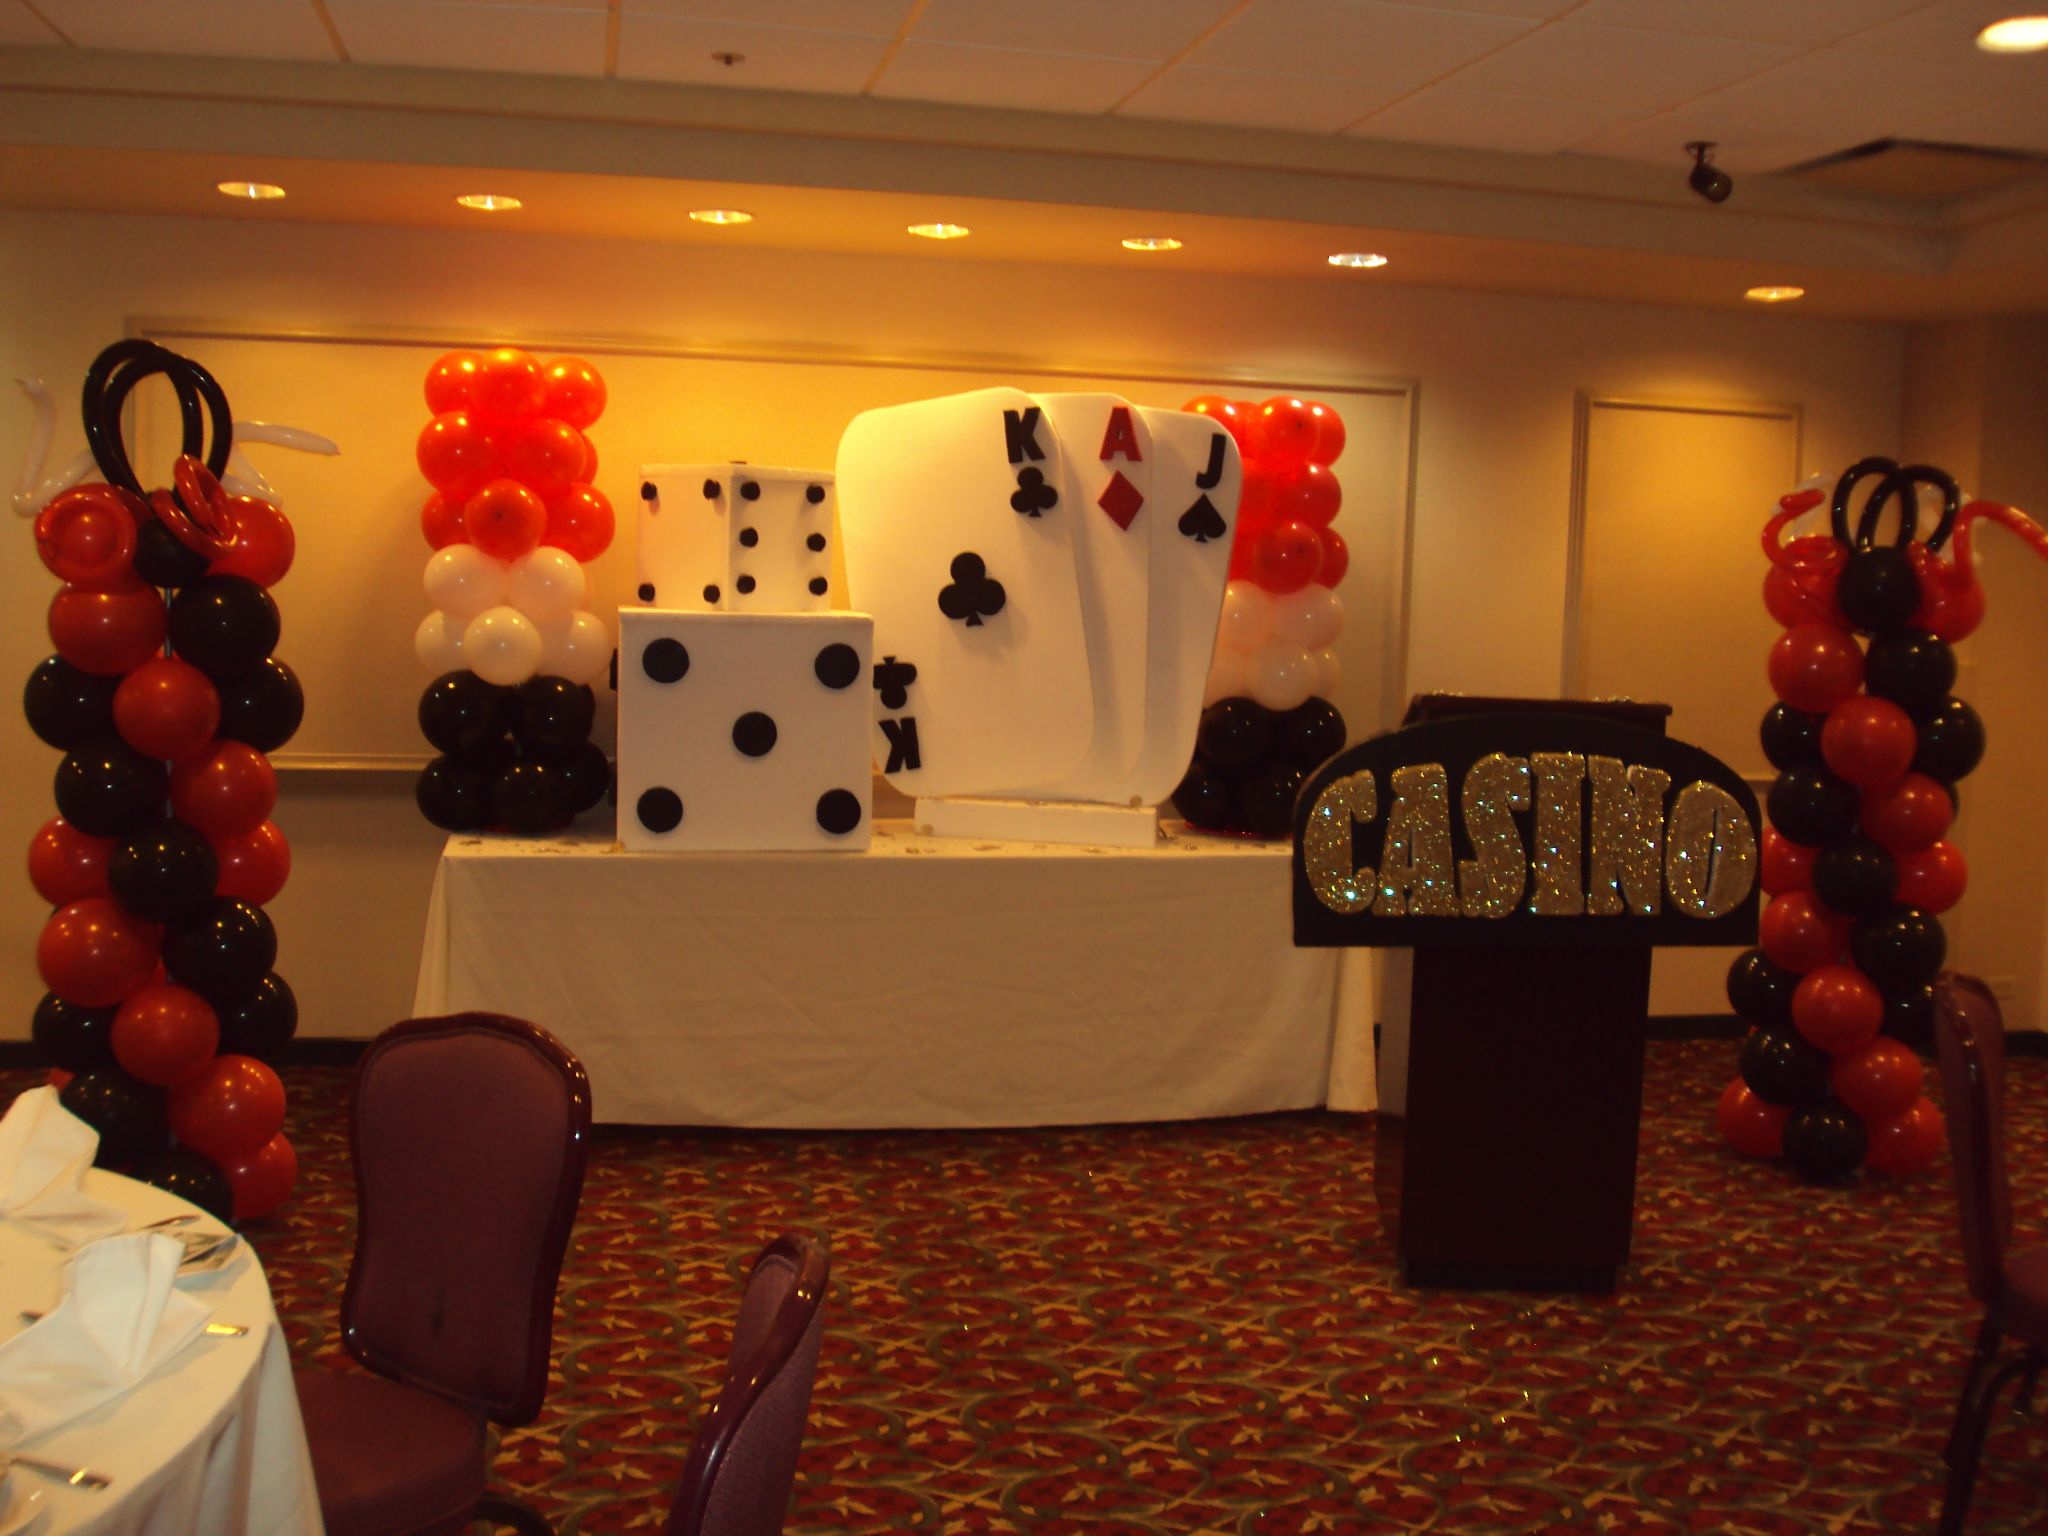 Casino party decoration decoration soir e casino for 007 decoration ideas